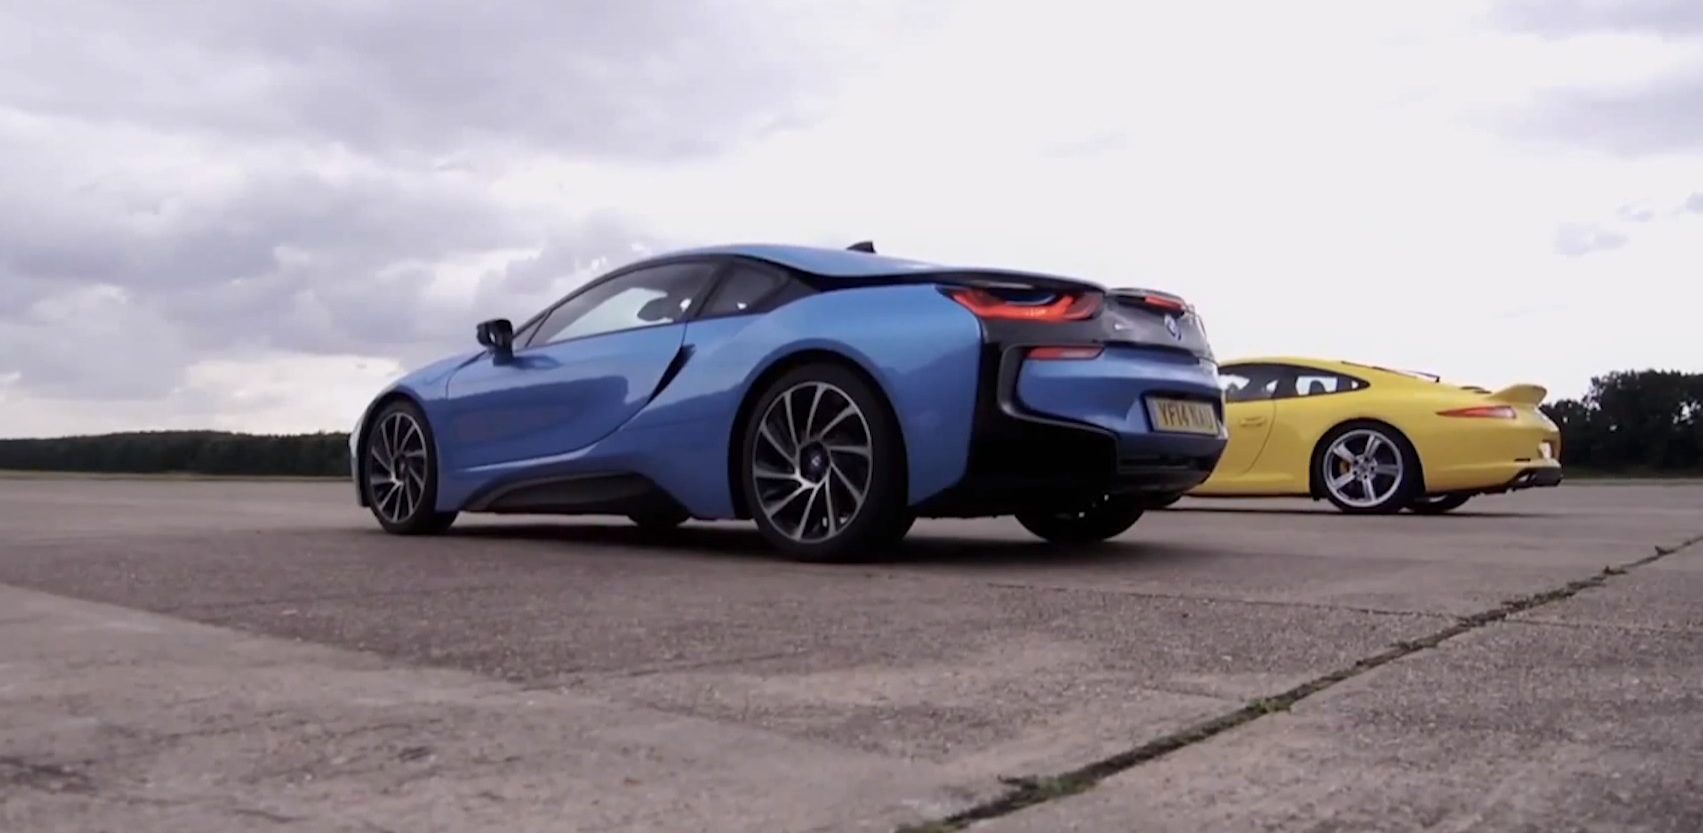 Bmw I8 Vs Porsche Carrera S Drag Race Autoevolution